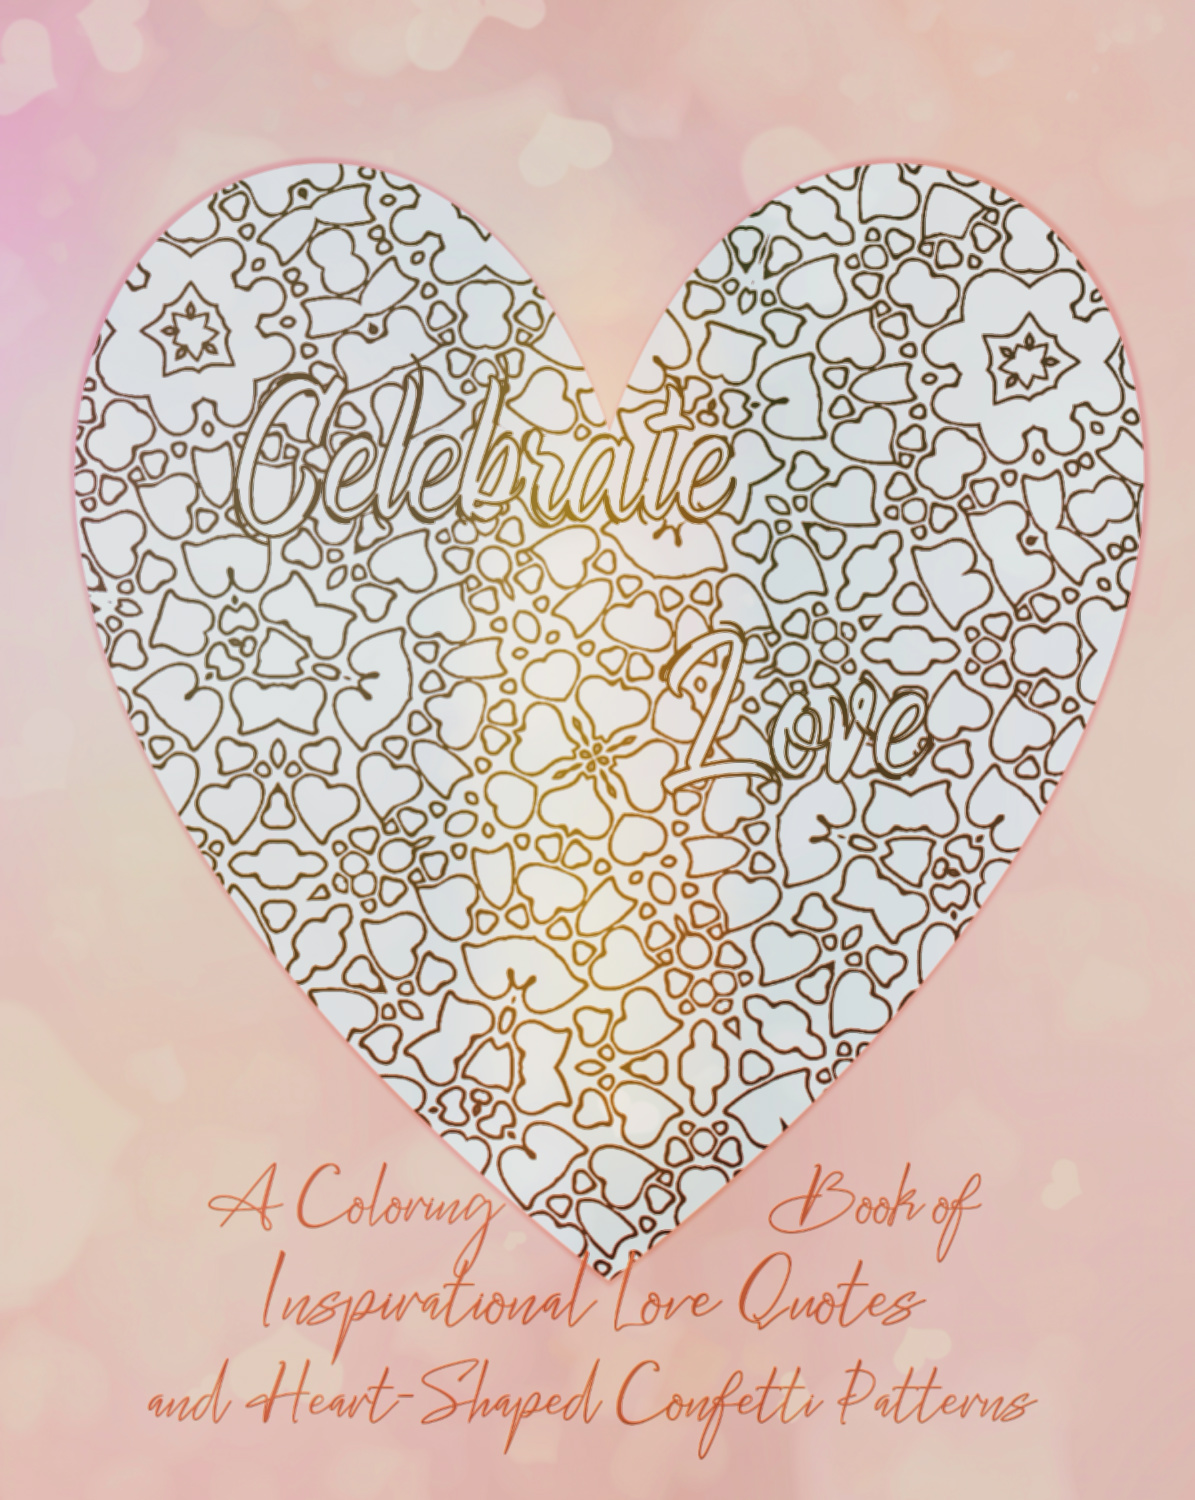 Celebrate Love quotes adult coloring book cover